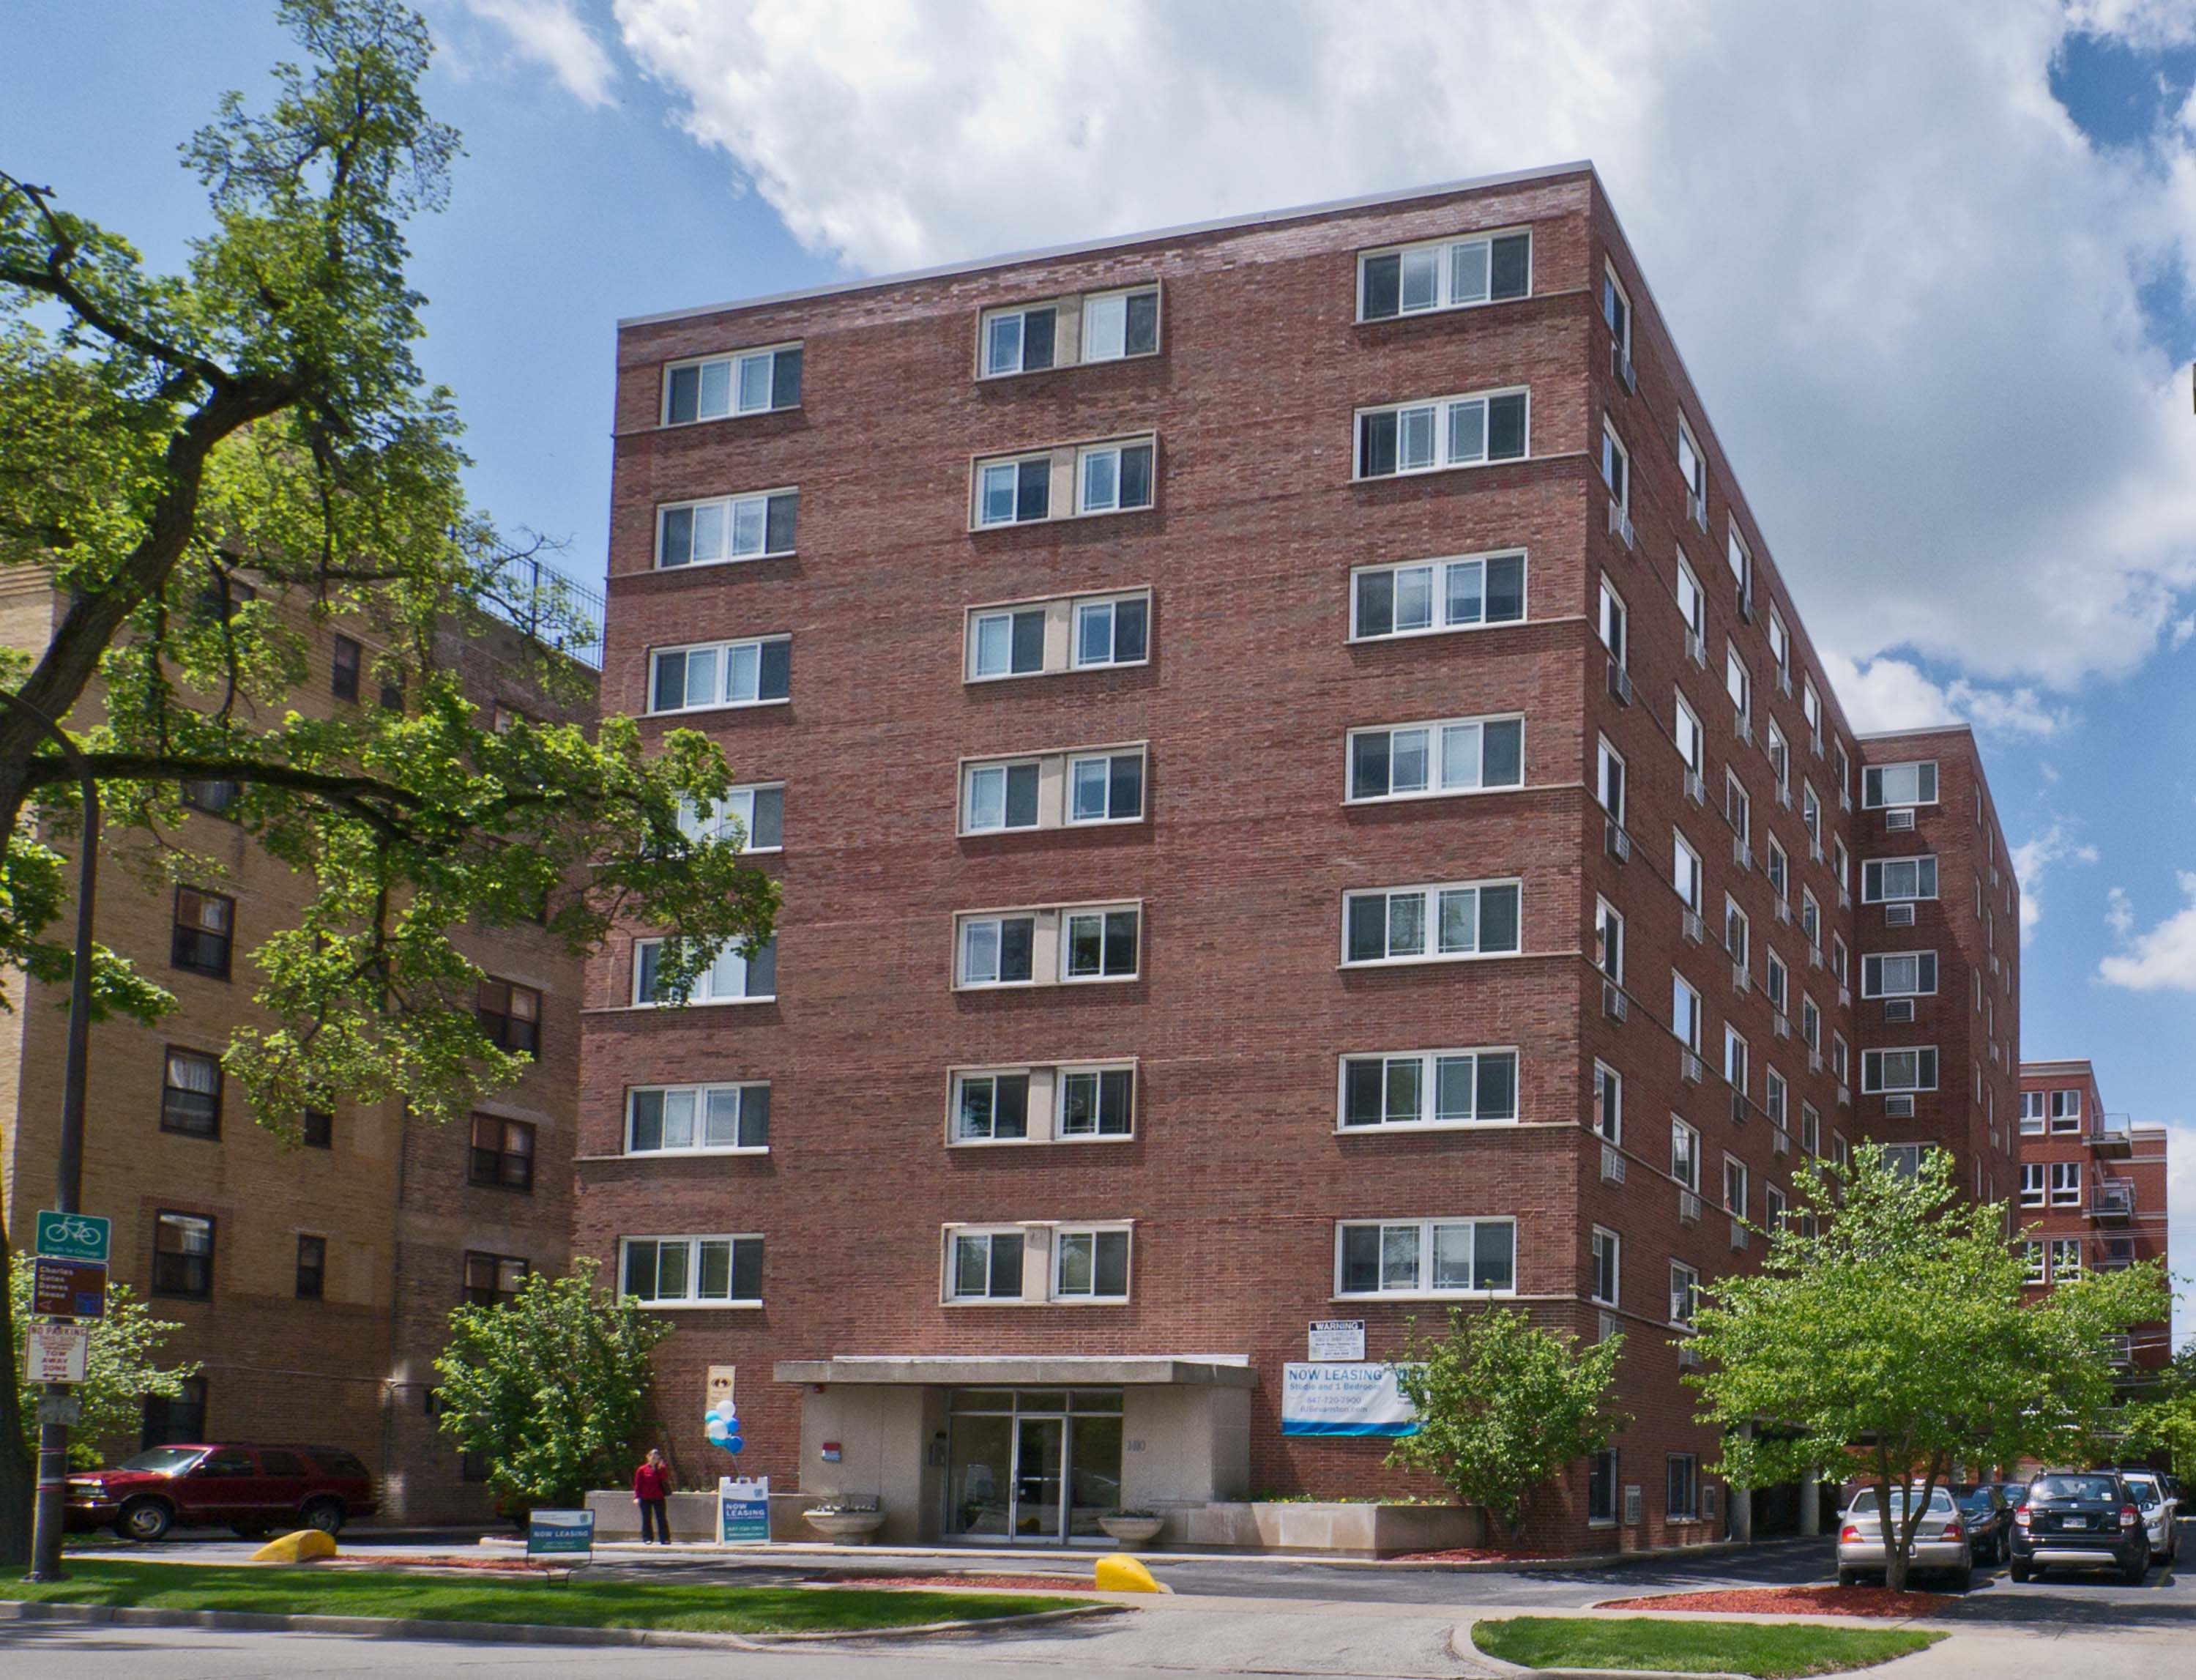 Brick Apartment Building evanston apartment review, 1410 chicago ave – yochicago